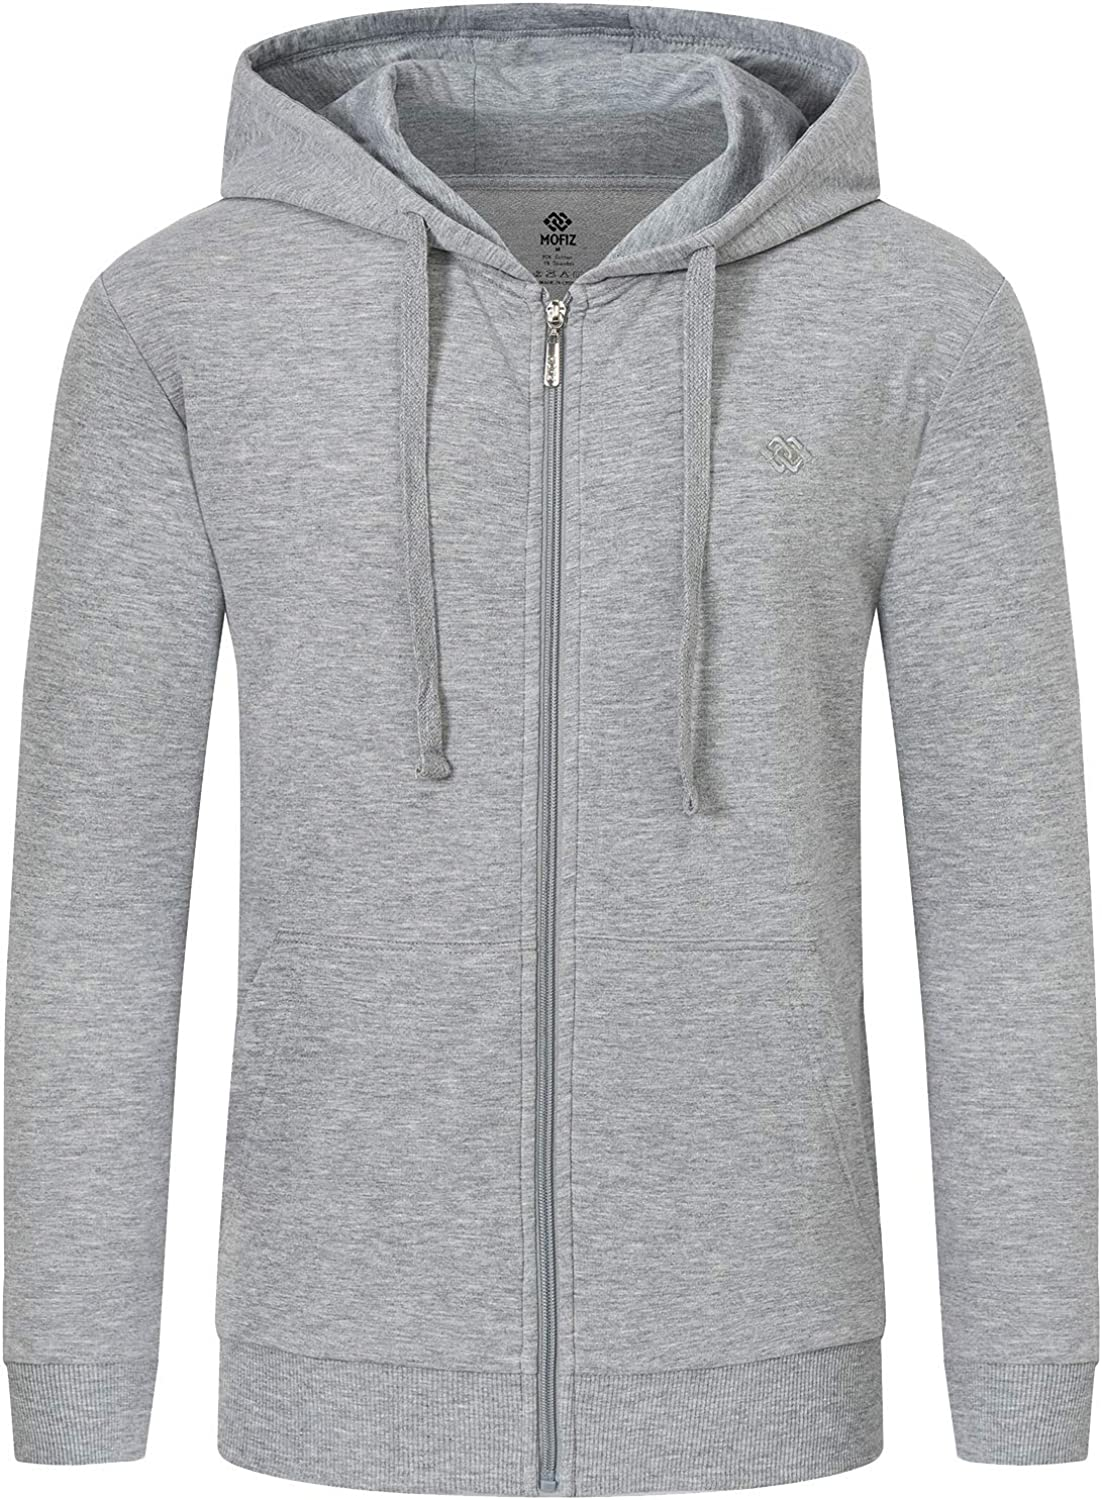 Men's Sports Sweatshirts Hoodies New Free Shipping Comfortable Max 47% OFF Cotton Fitness Long